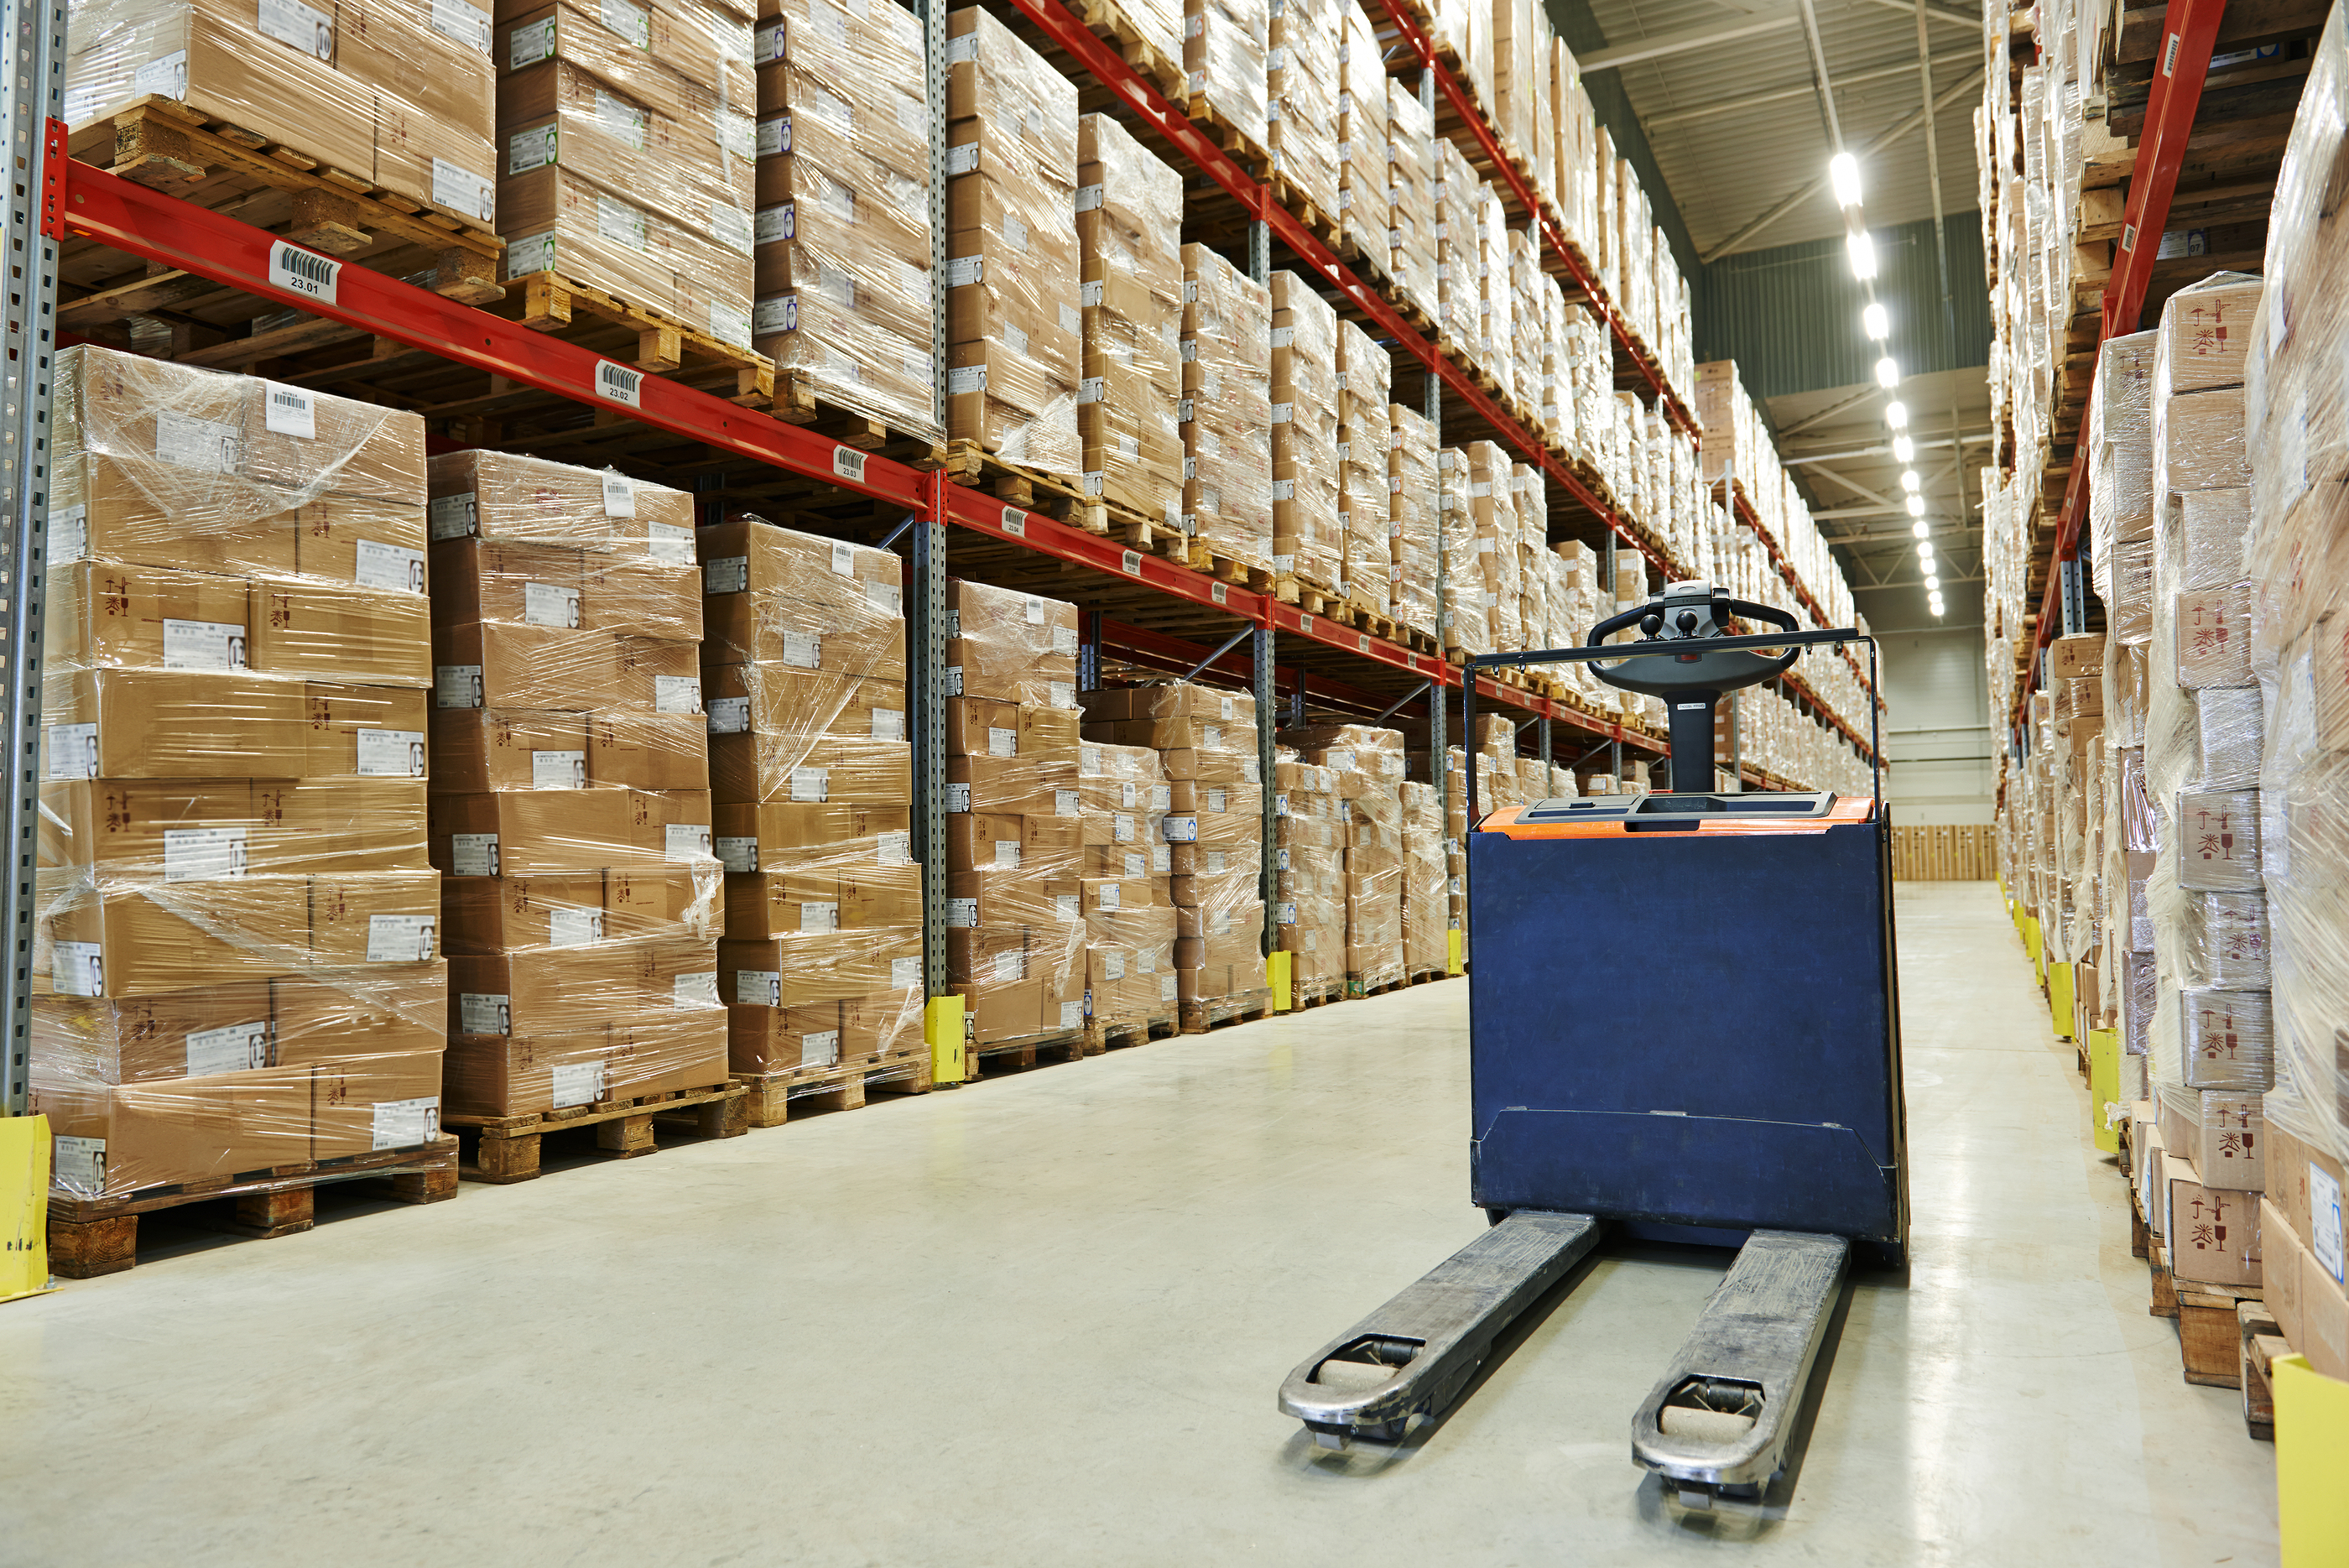 Manual forklift pallet stacker truck equipment at food warehouse